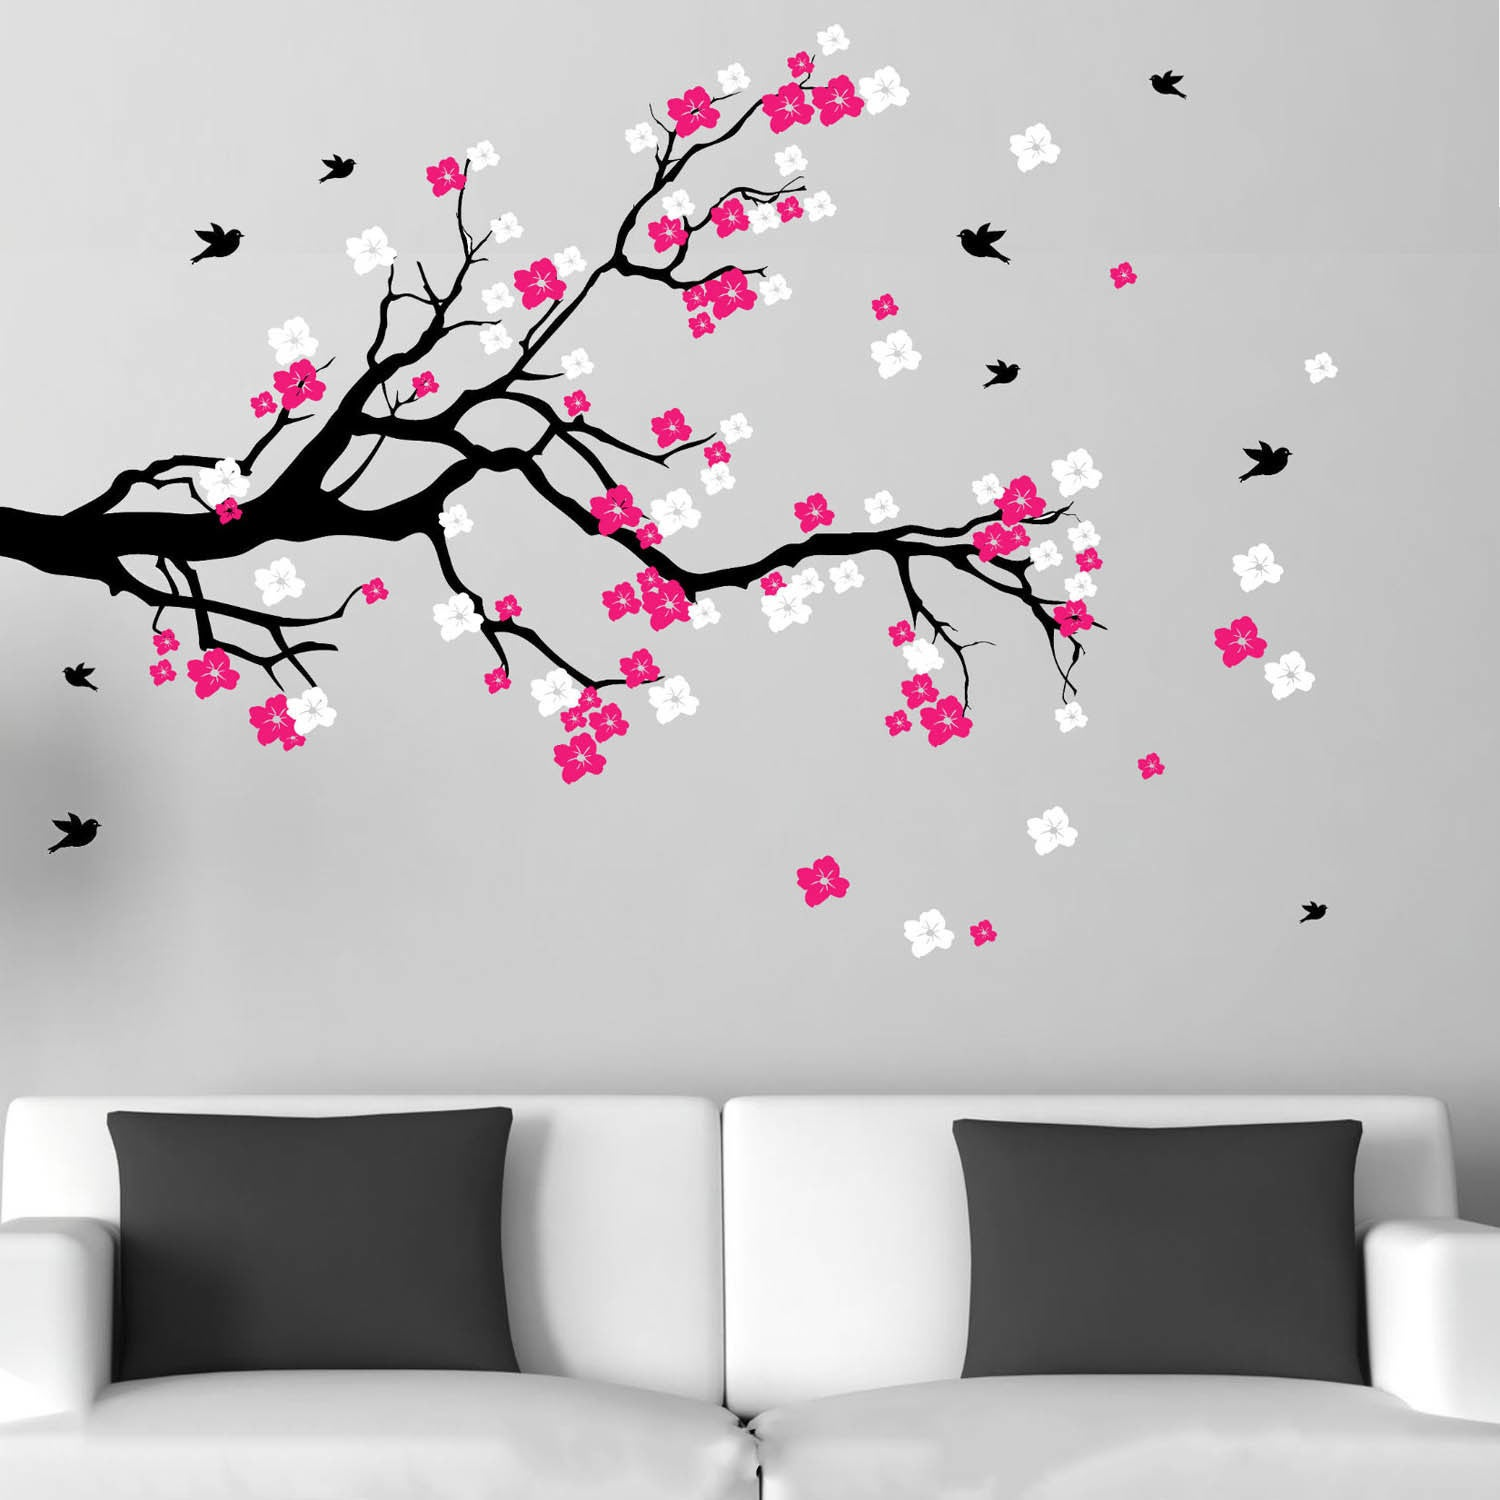 Shop Cherry Blossom Branch with Birds Vinyl Wall Art Decal - Free Shipping Today - Overstock.com - 7668420 & Shop Cherry Blossom Branch with Birds Vinyl Wall Art Decal - Free ...